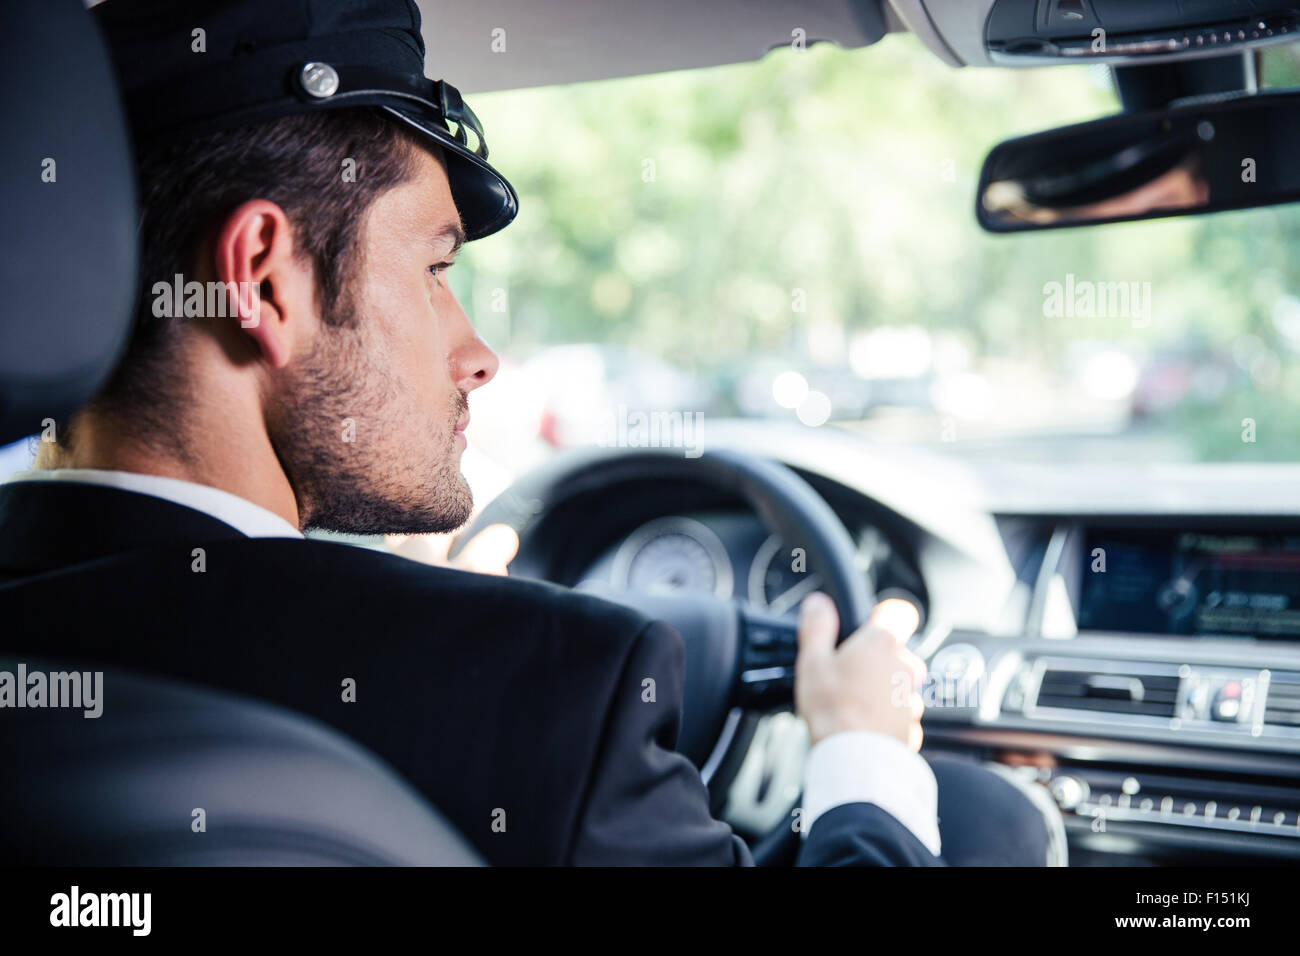 Portrait of a handsome male chauffeur riding car - Stock Image